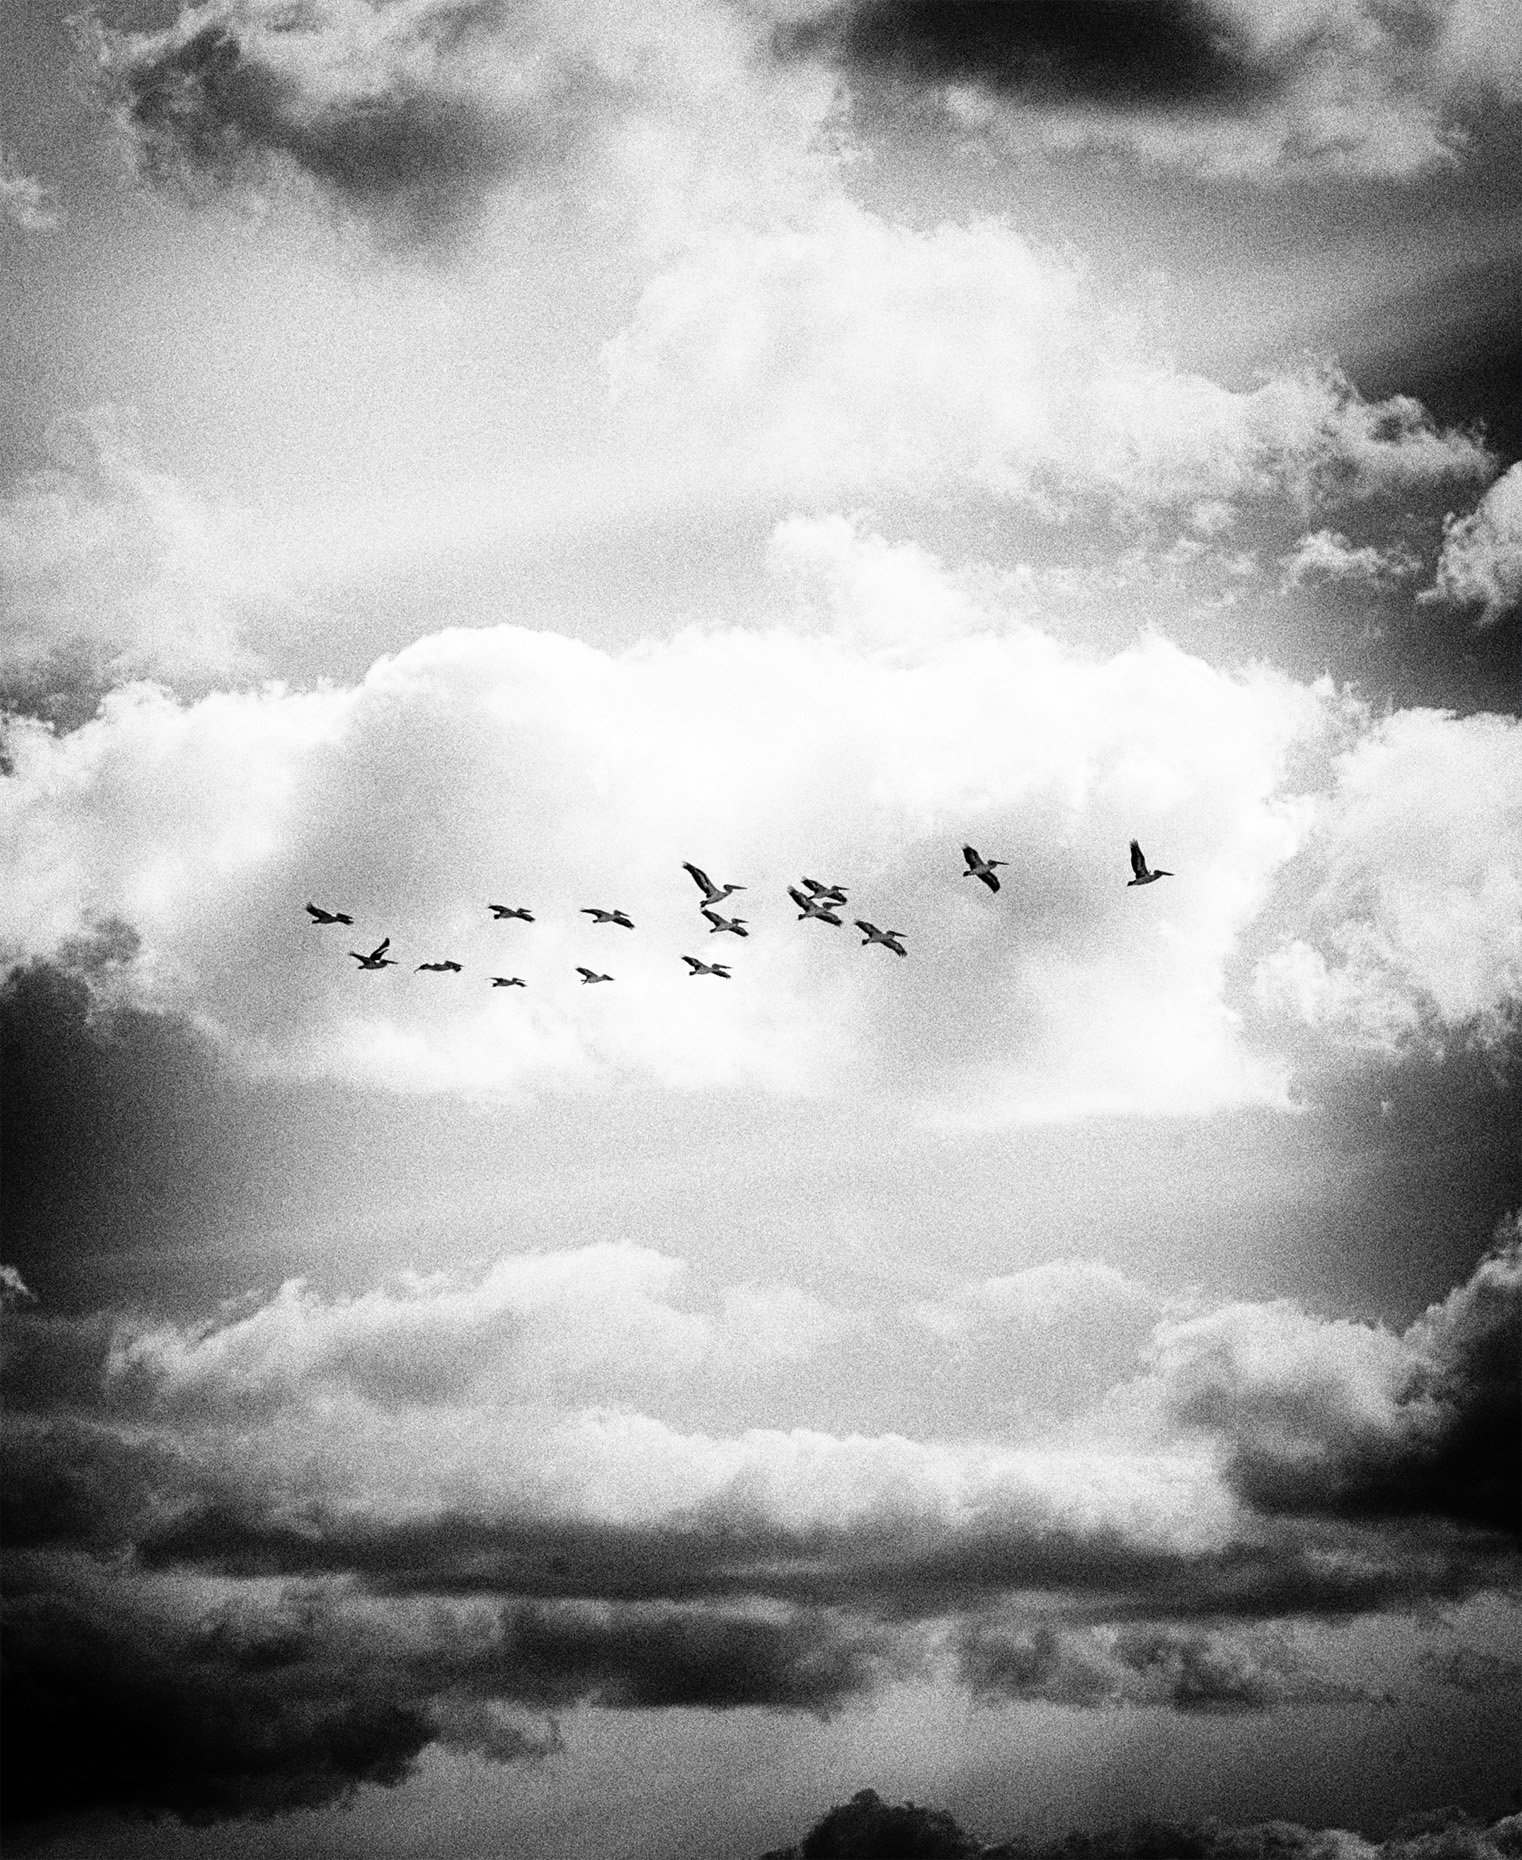 """Pelicans"" copyright : Russell Shakespeare"